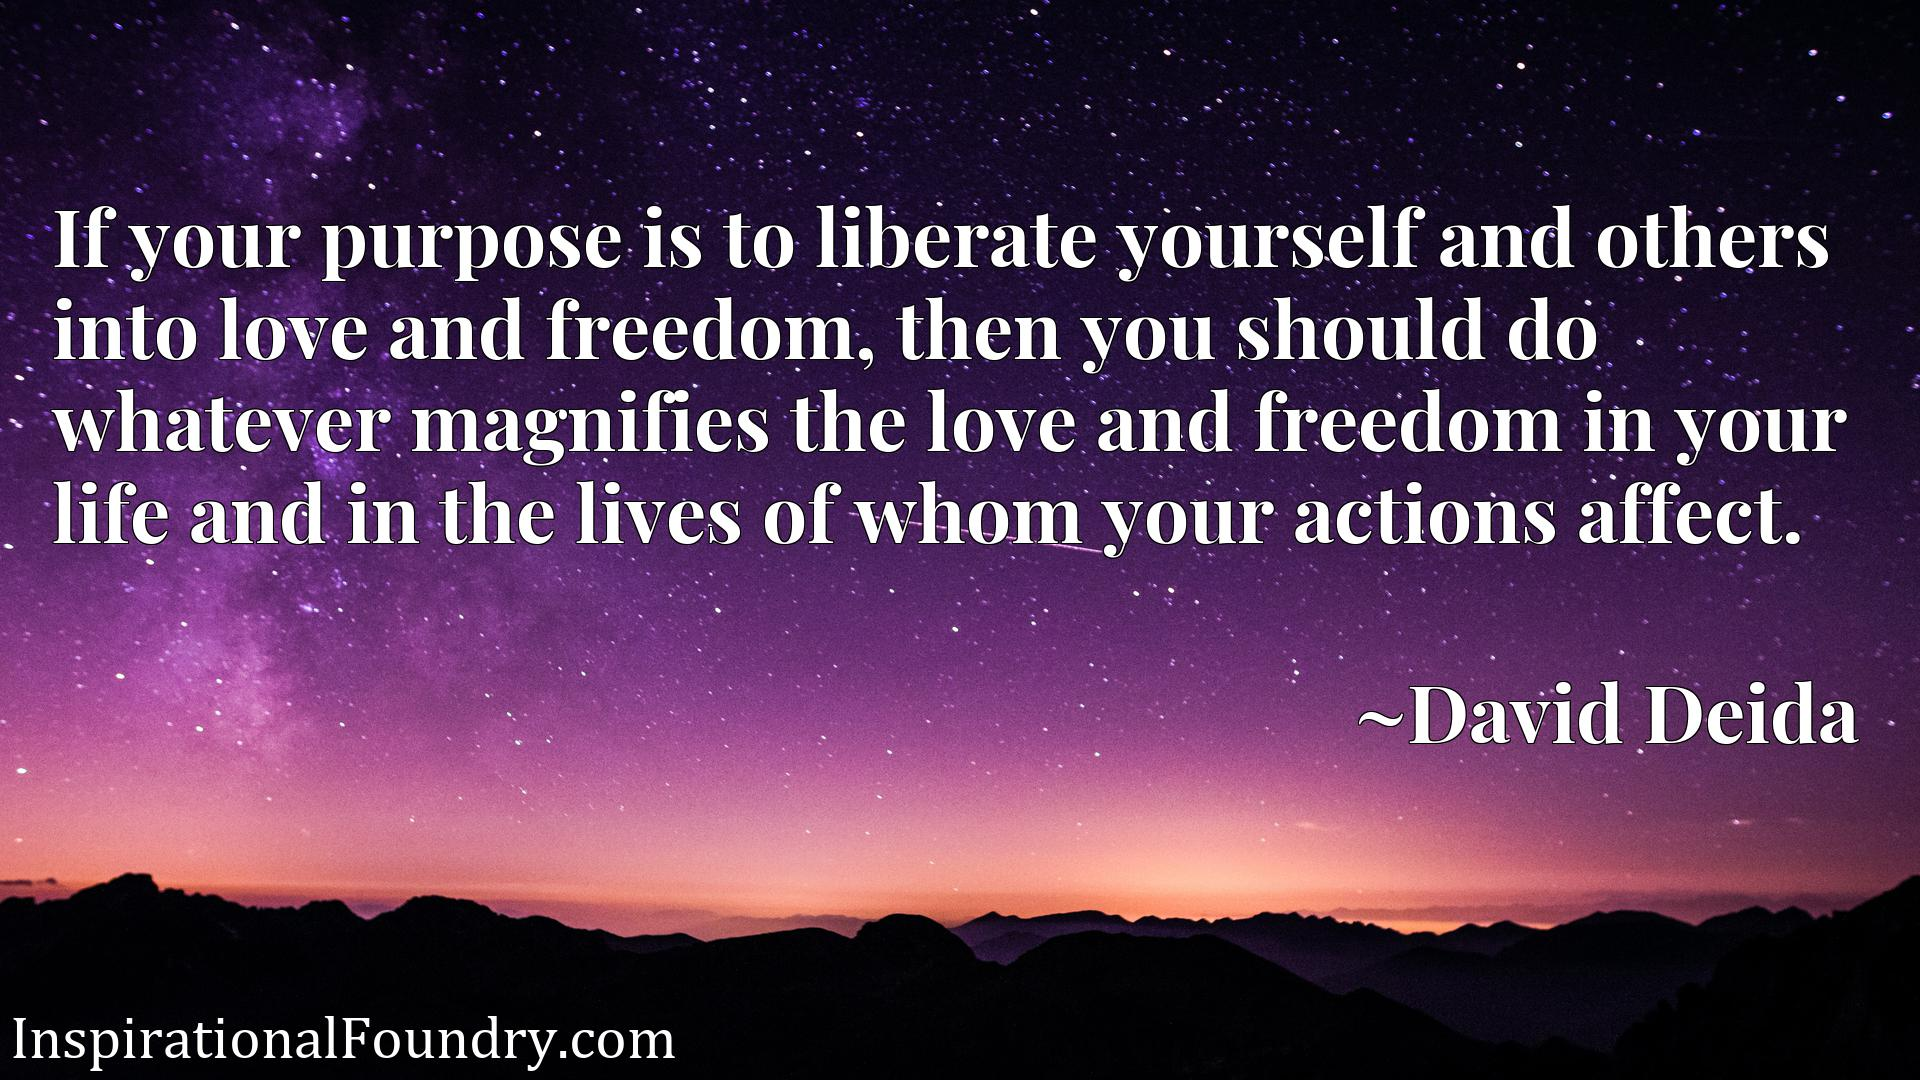 If your purpose is to liberate yourself and others into love and freedom, then you should do whatever magnifies the love and freedom in your life and in the lives of whom your actions affect.